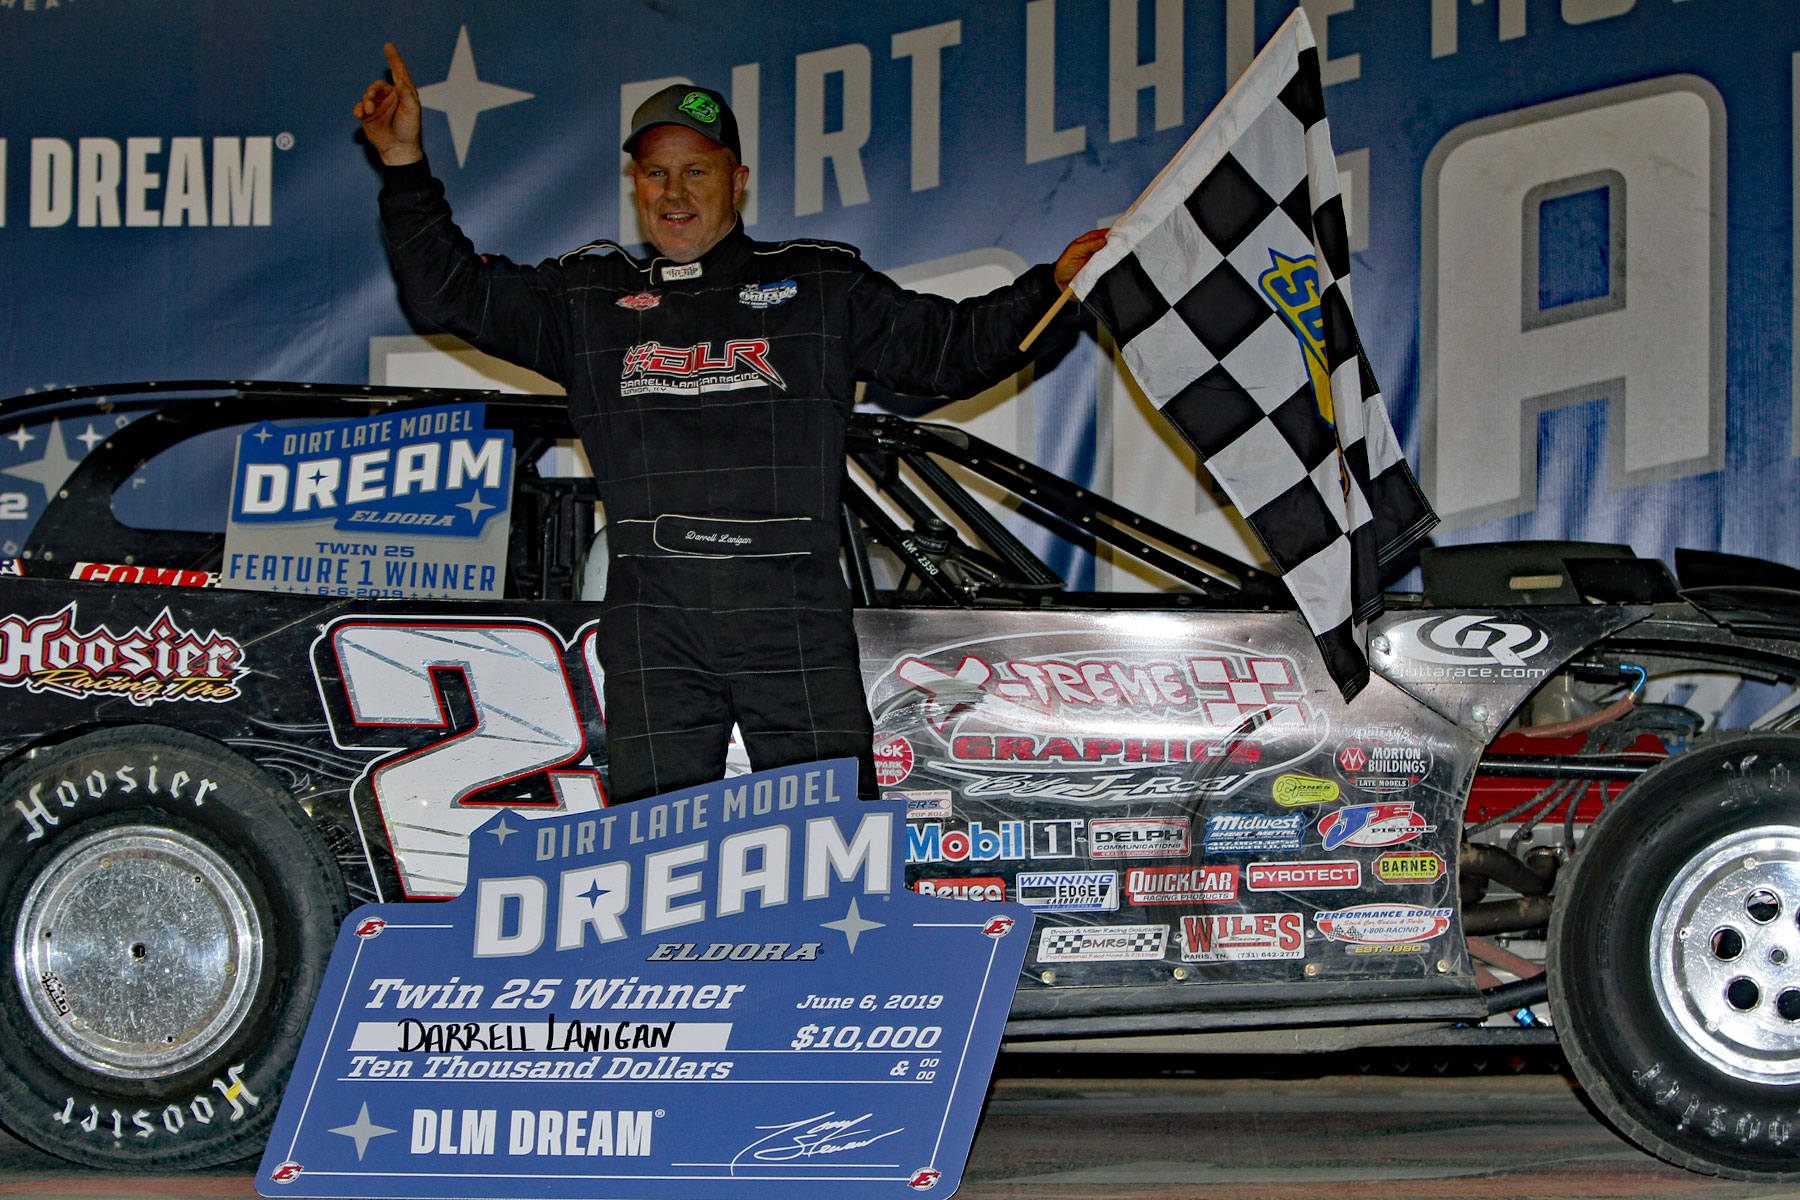 Jim DenHamer's photos from Eldora Speedway's Dream Thursday